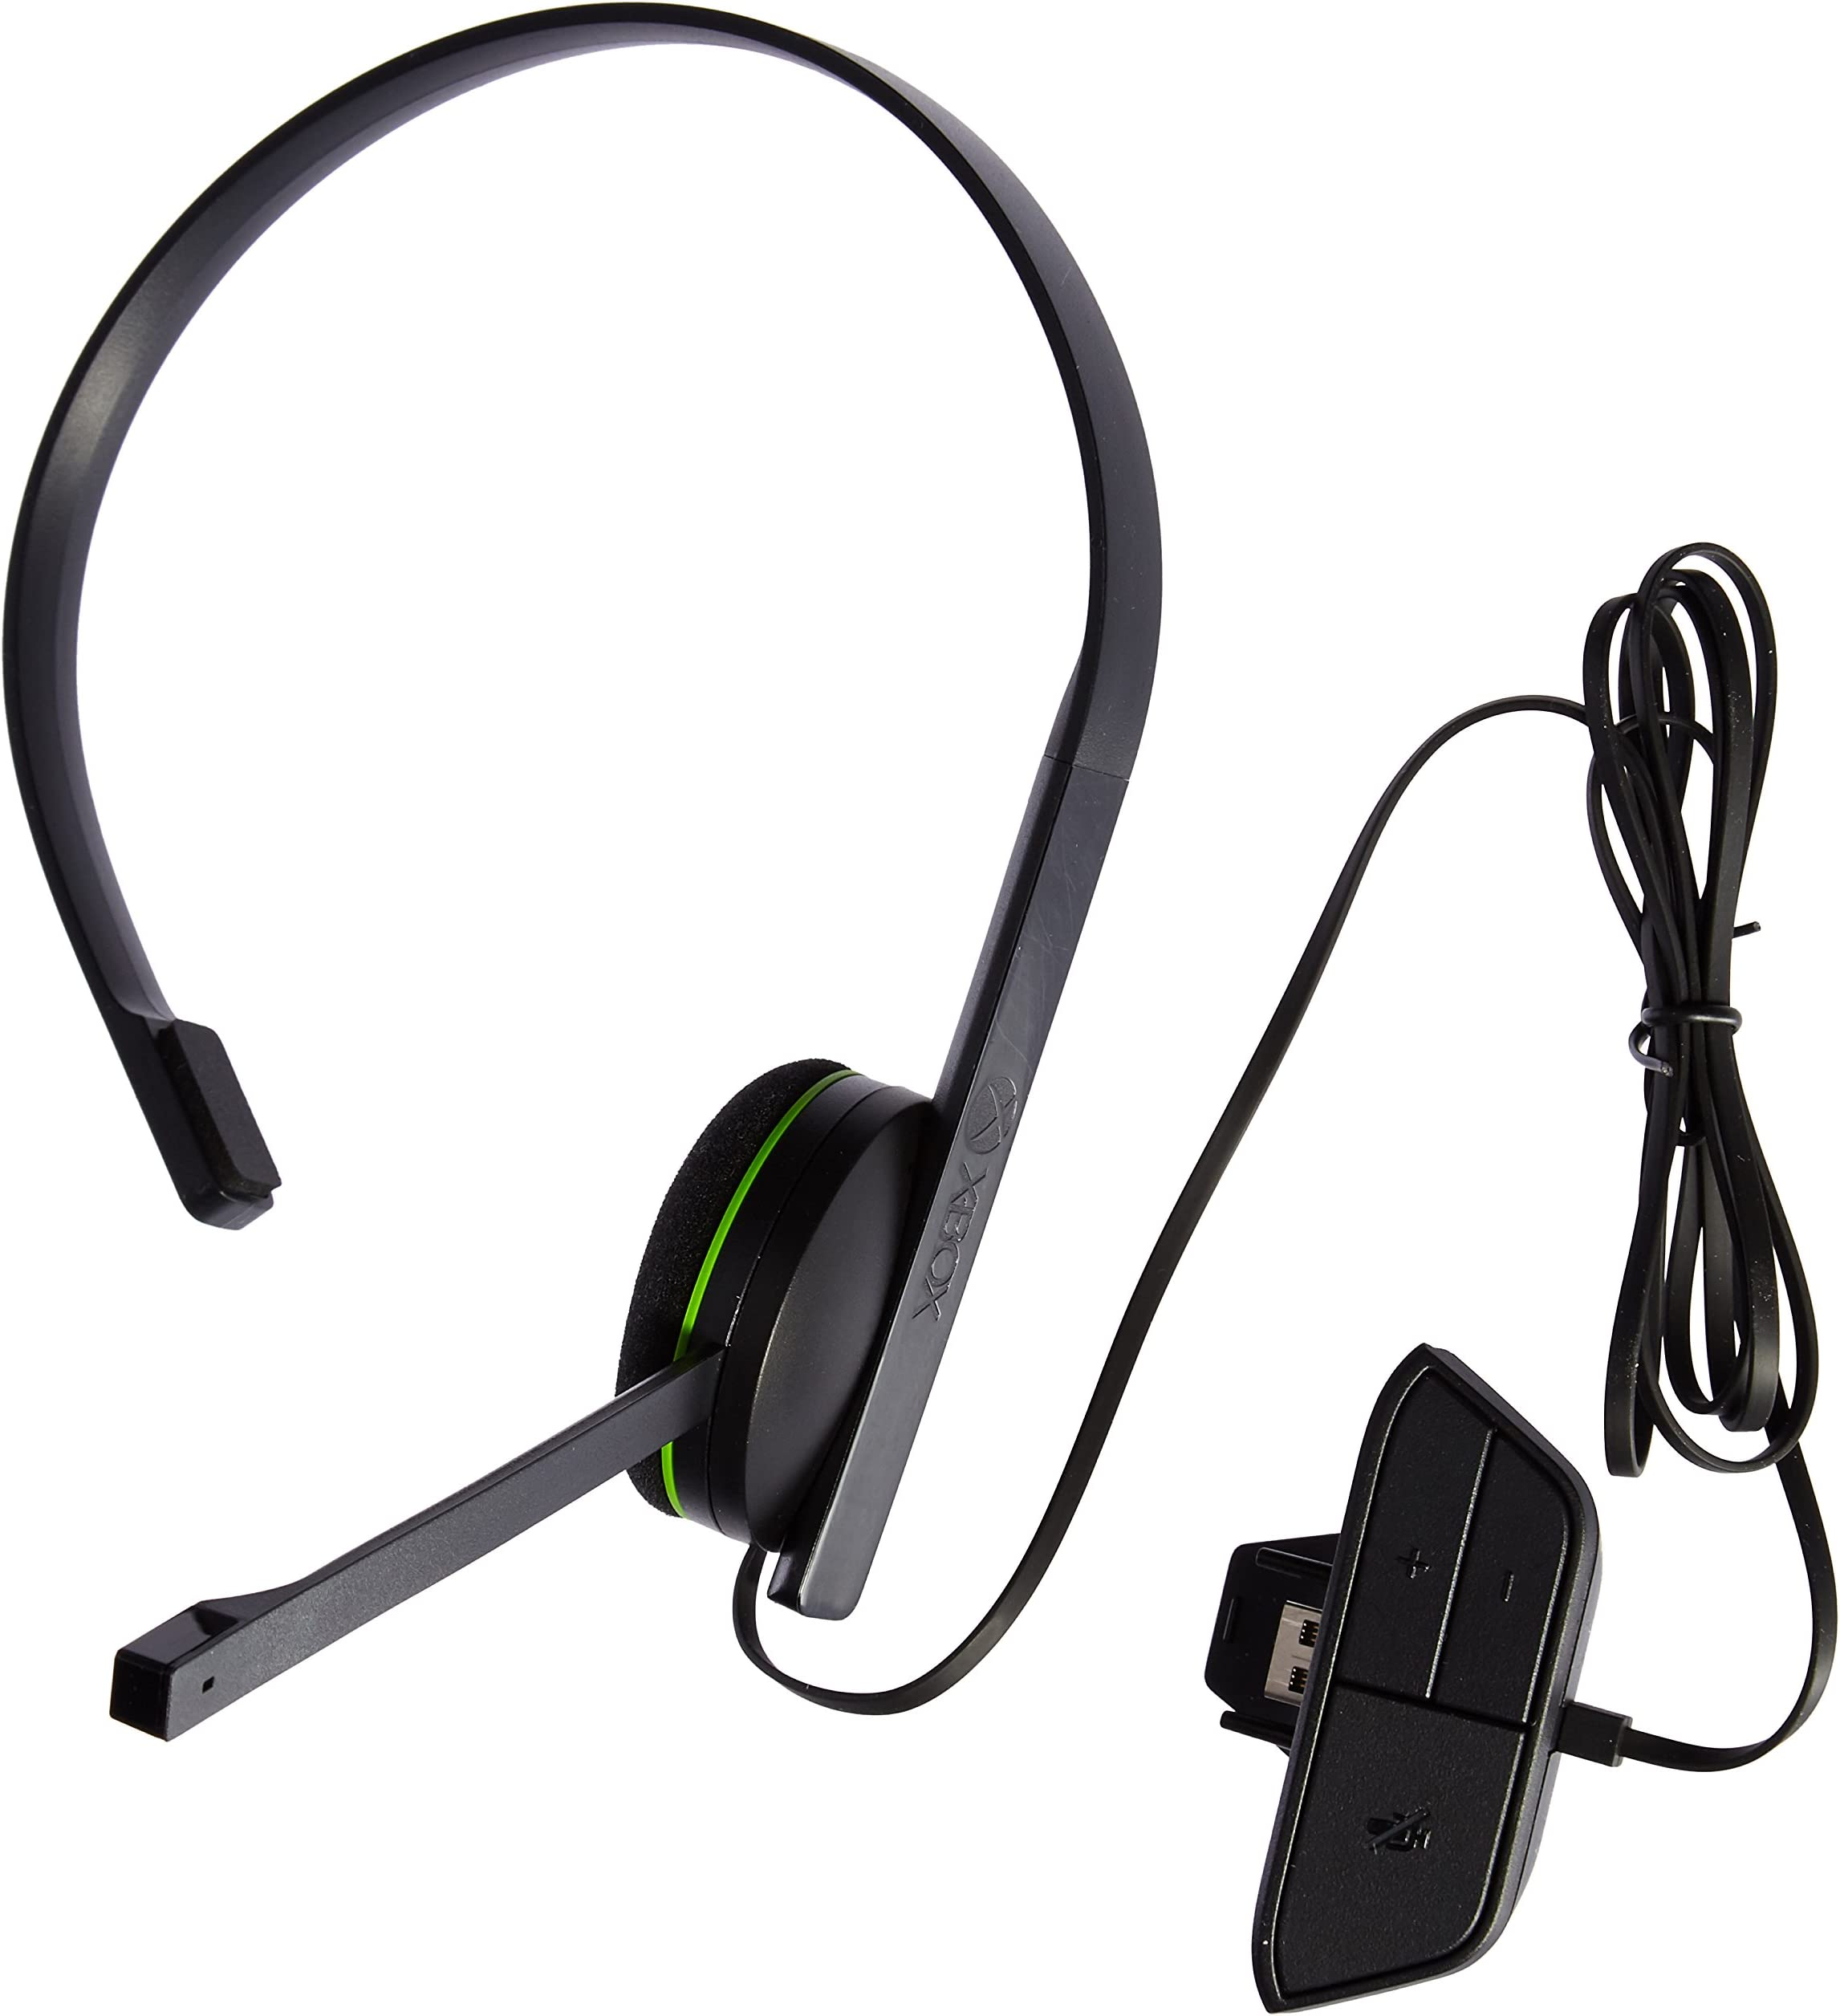 Amazon.com: Xbox One Chat Headset: Microsoft: Video Games